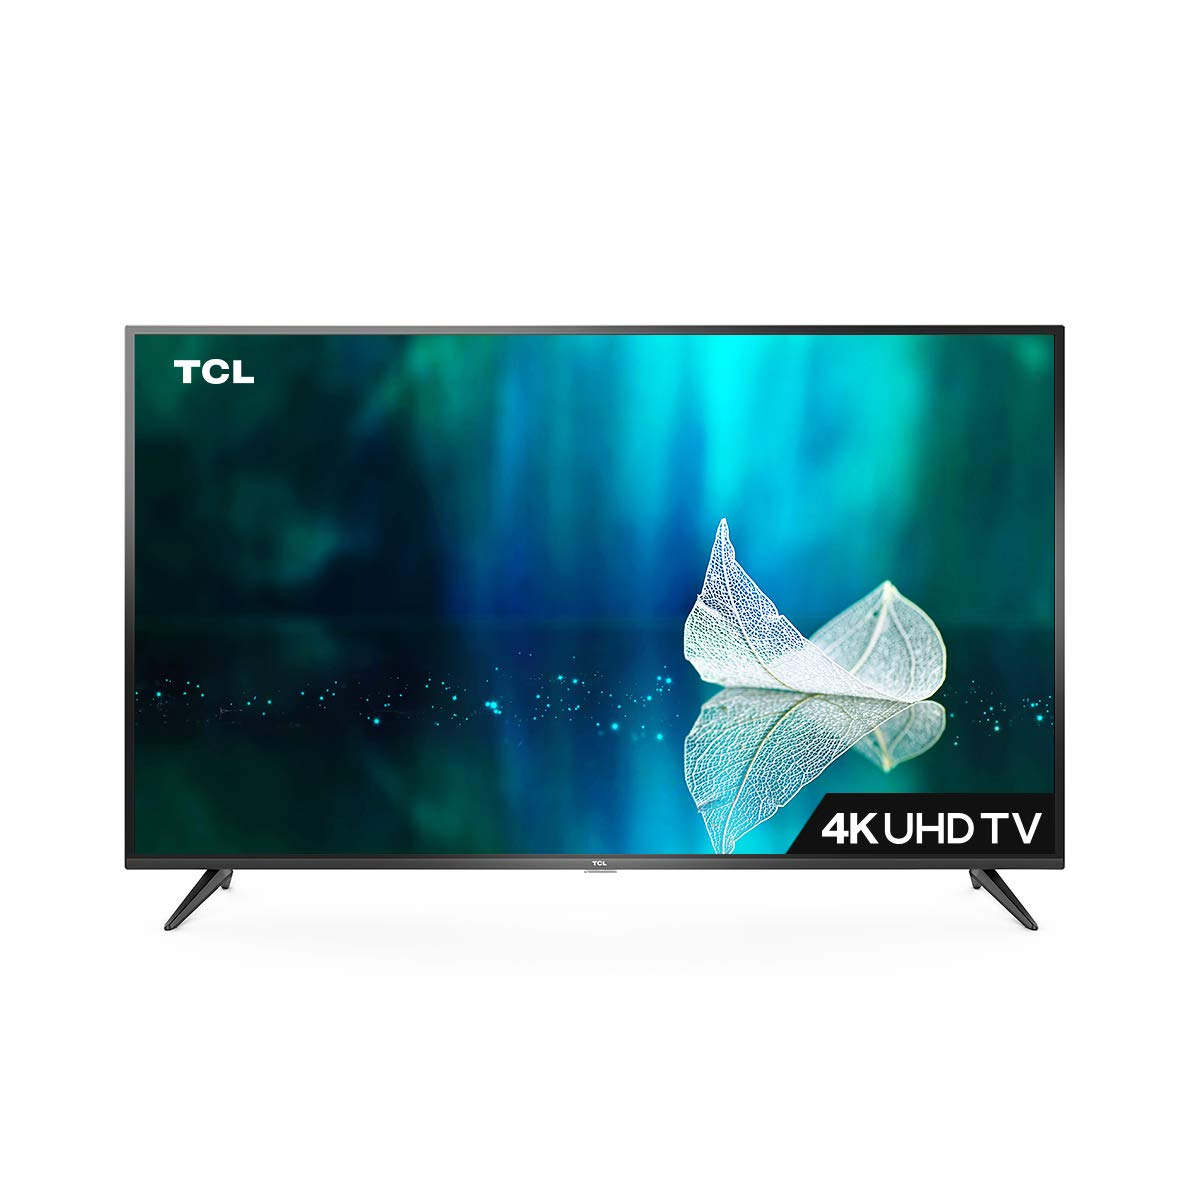 TCL 107.88 cm (43 inches) 4K Ultra HD Smart LED TV 43P65US-2019 (Black)